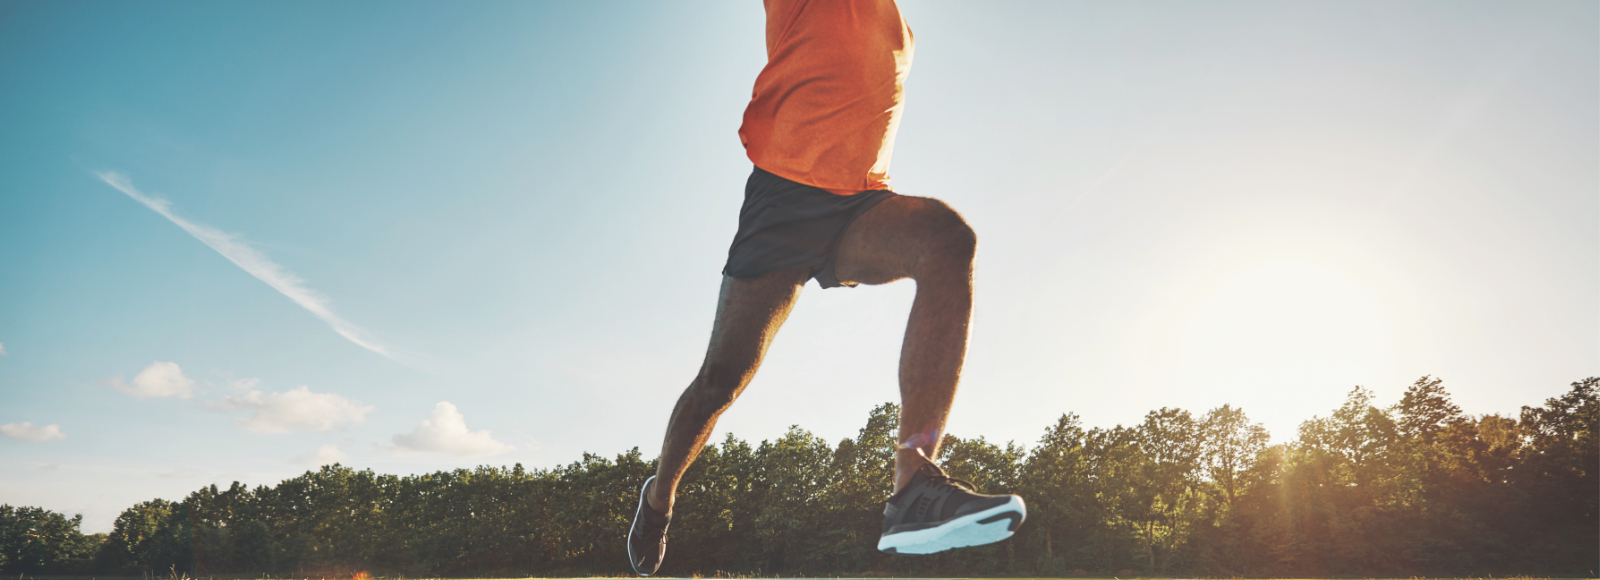 A man in athletic wear leaps forward with the sun in the background using his Sof Sole® performance insoles.